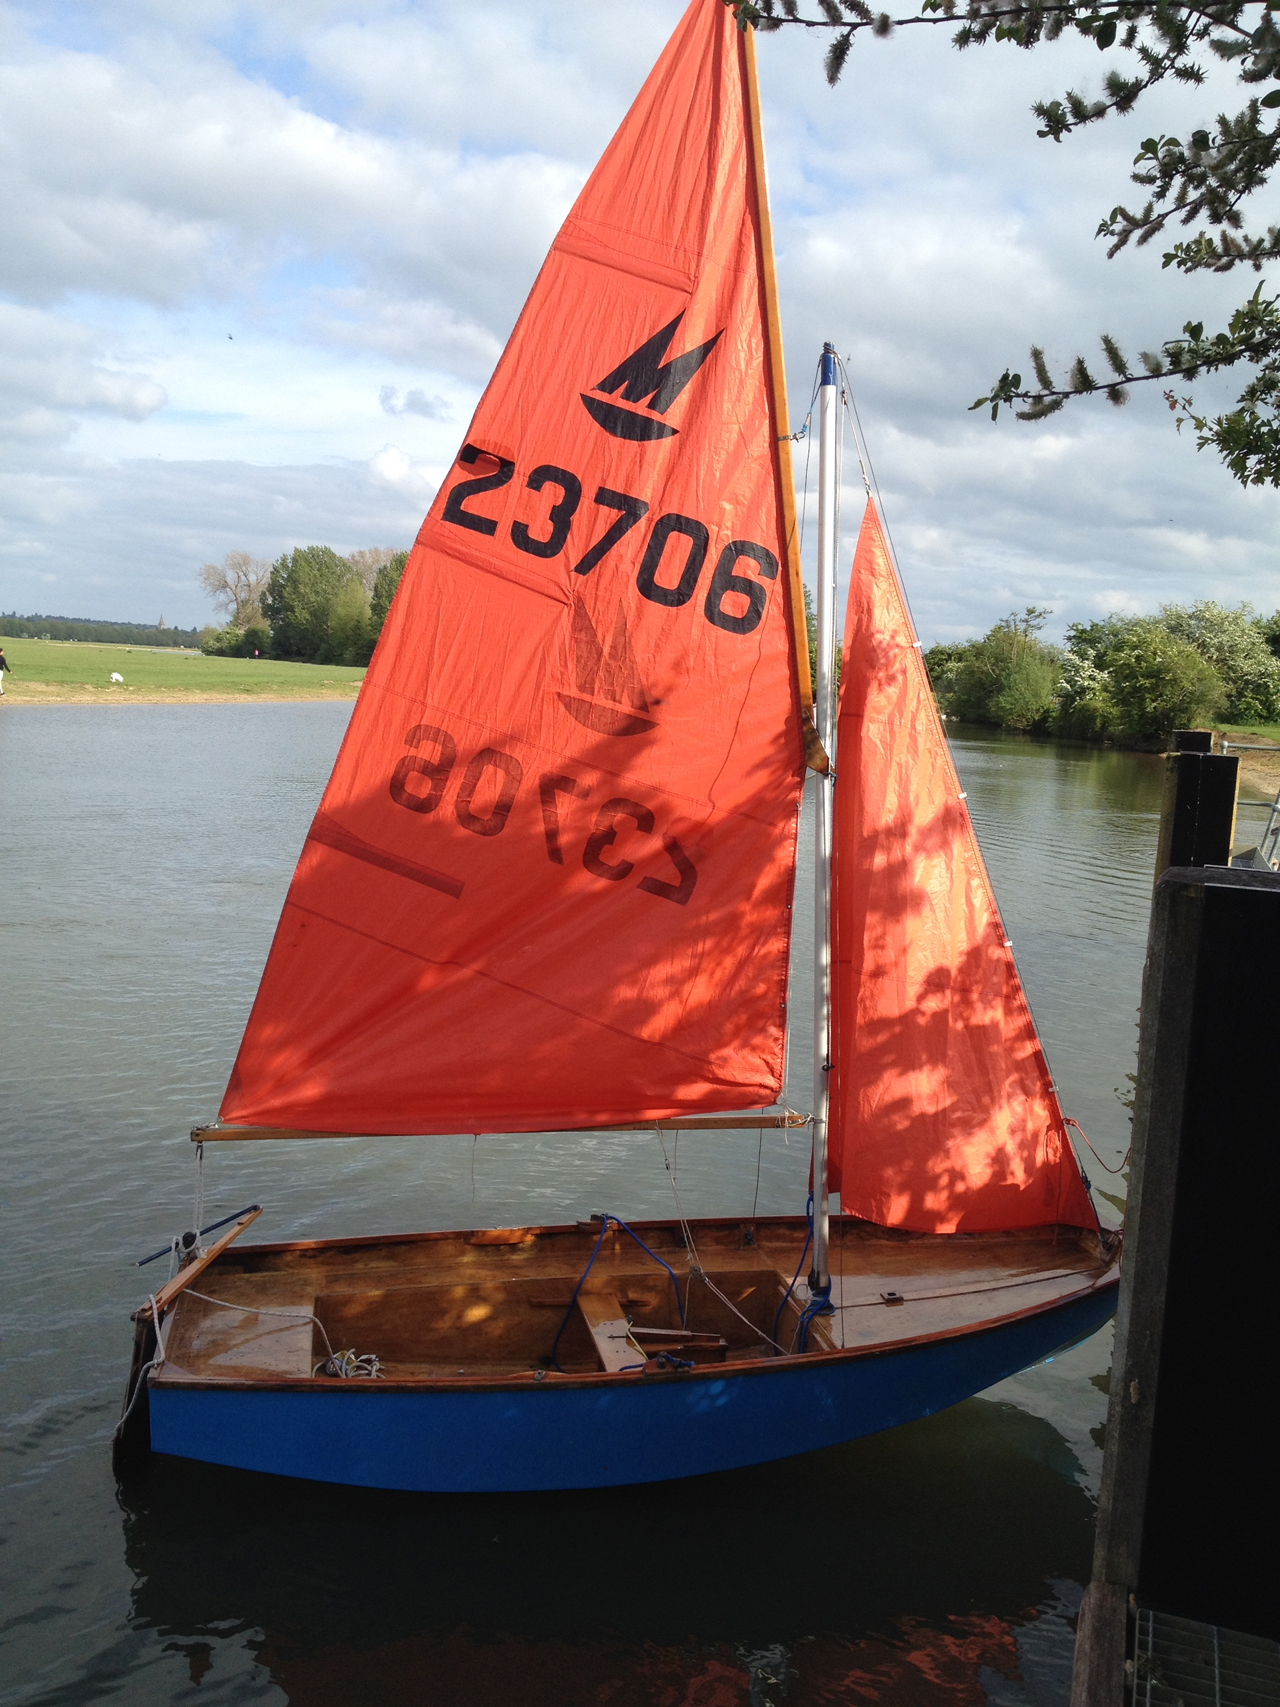 Blue wooden Mirror dinghy rigged up on the river at Oxford